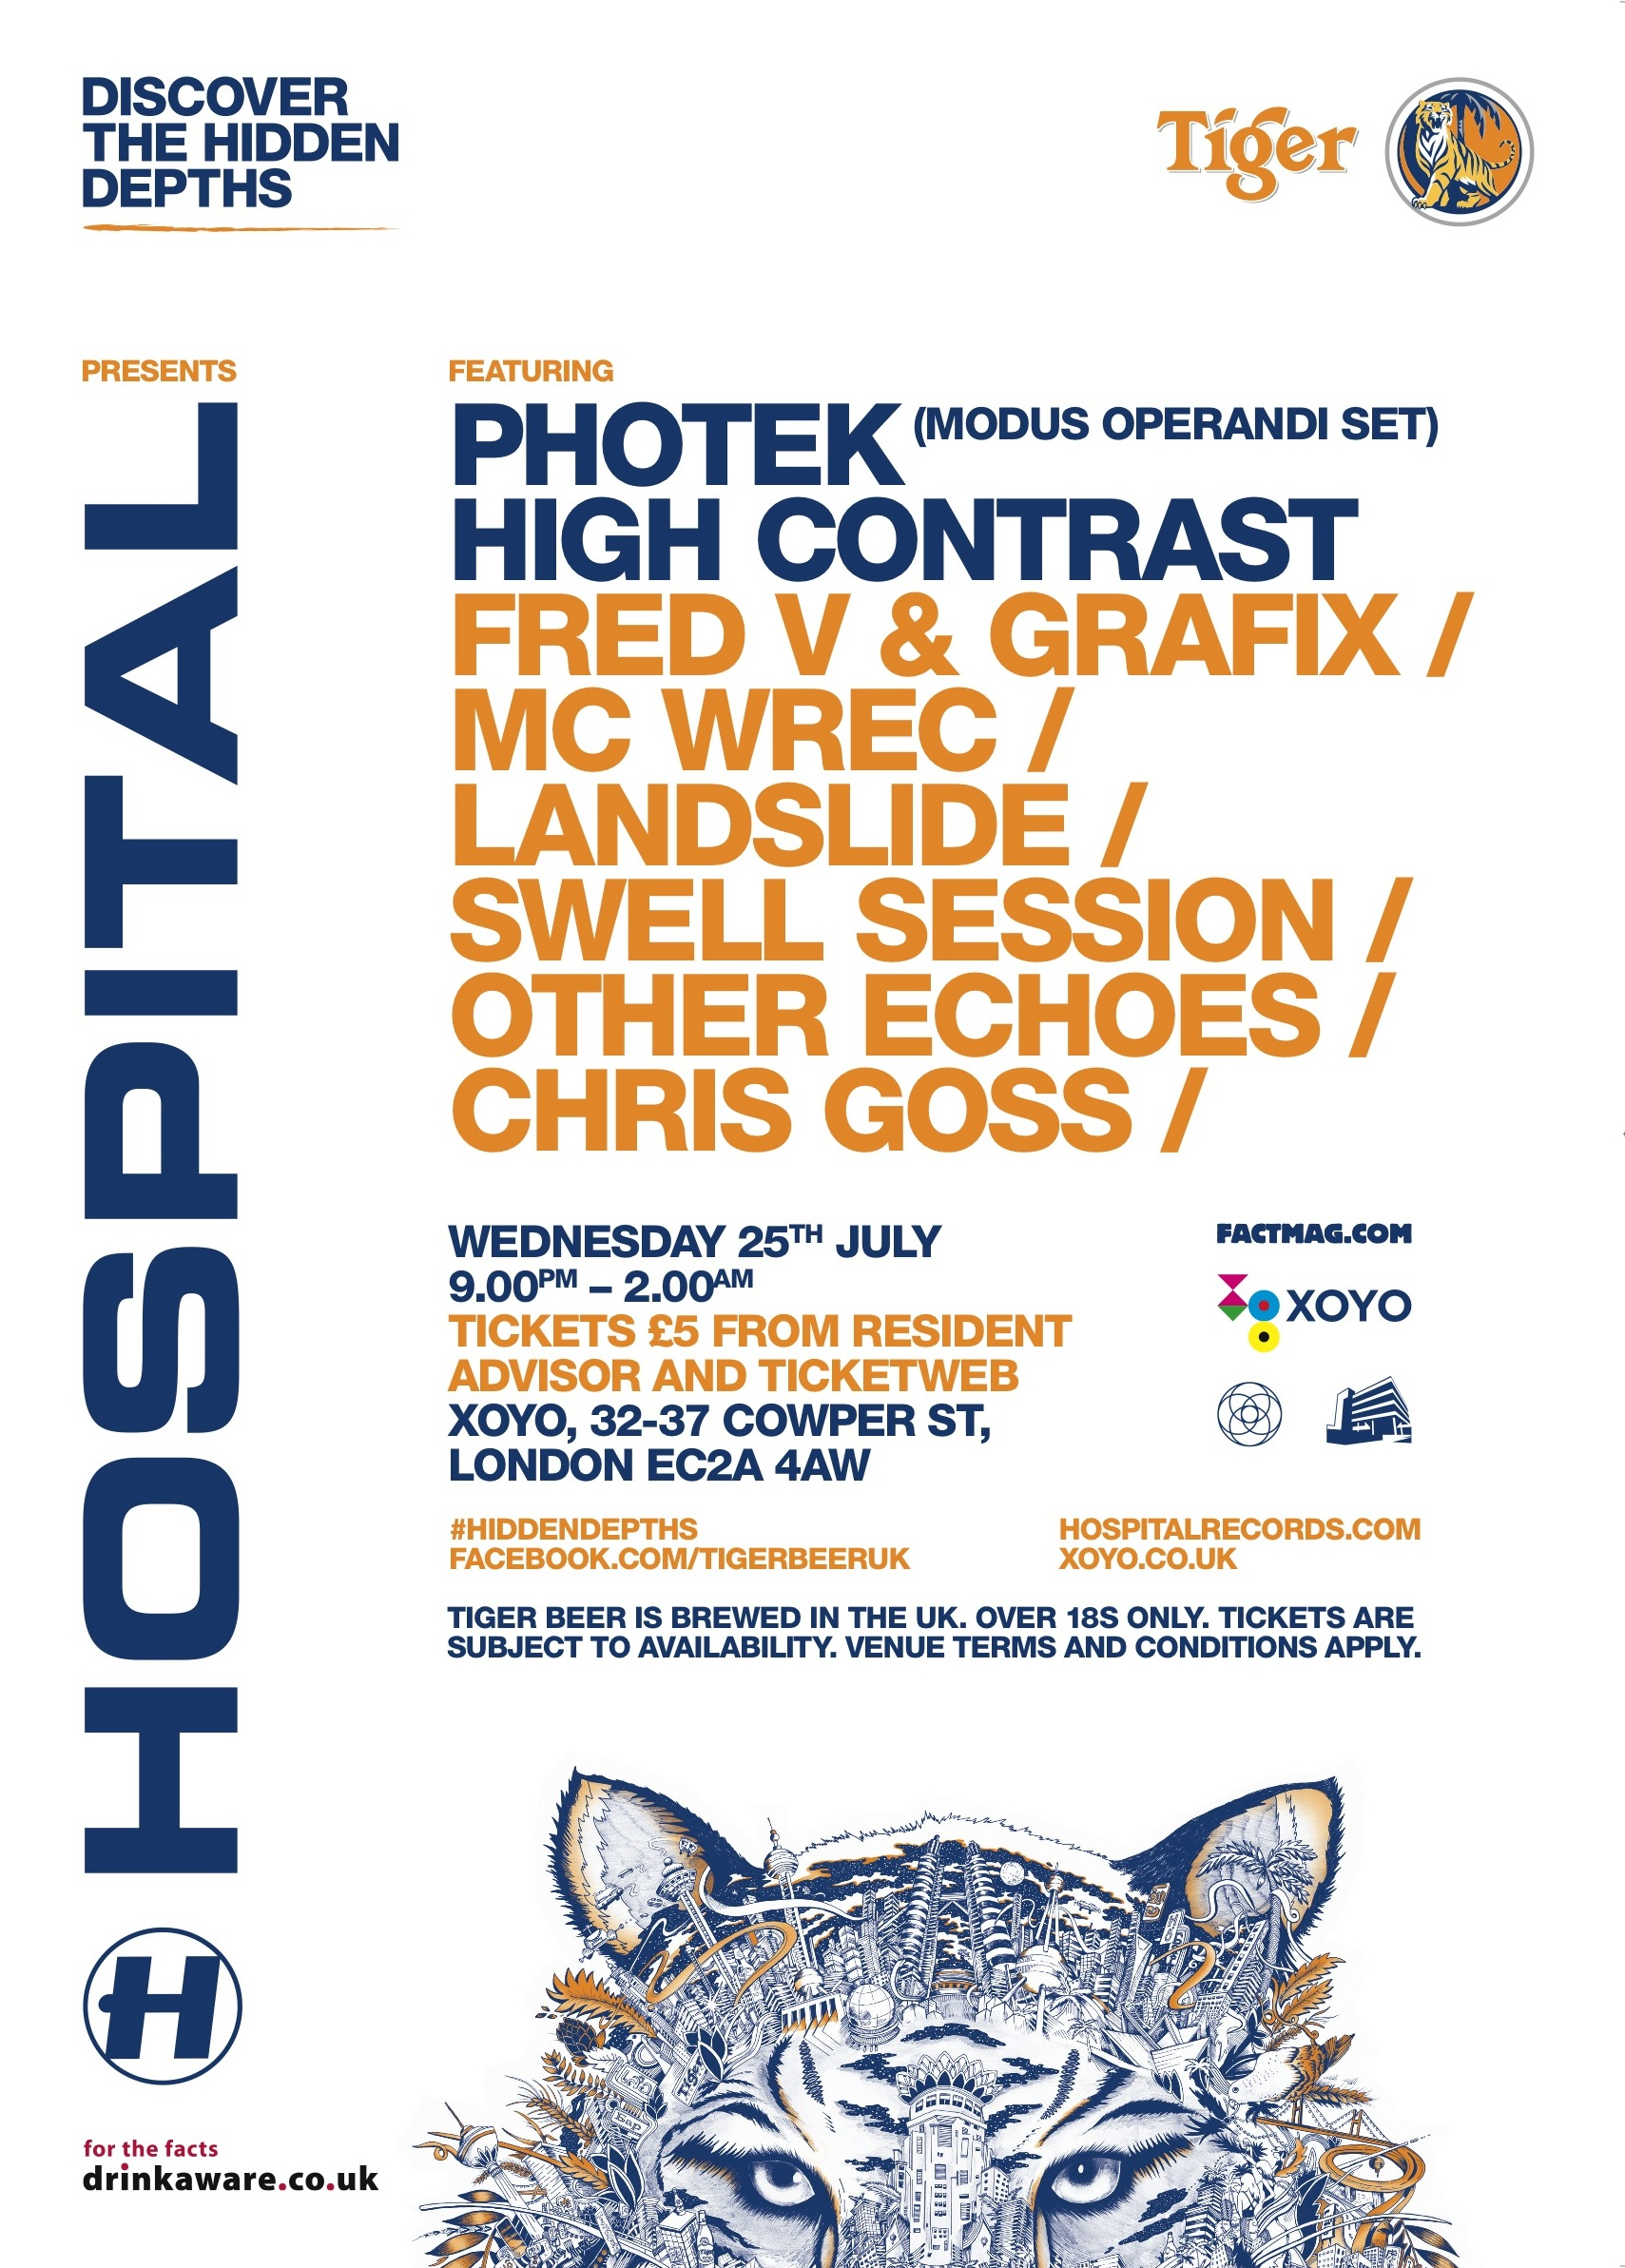 Tiger presents the the Hidden Depths of Hospital with Photek, High Contrast and more